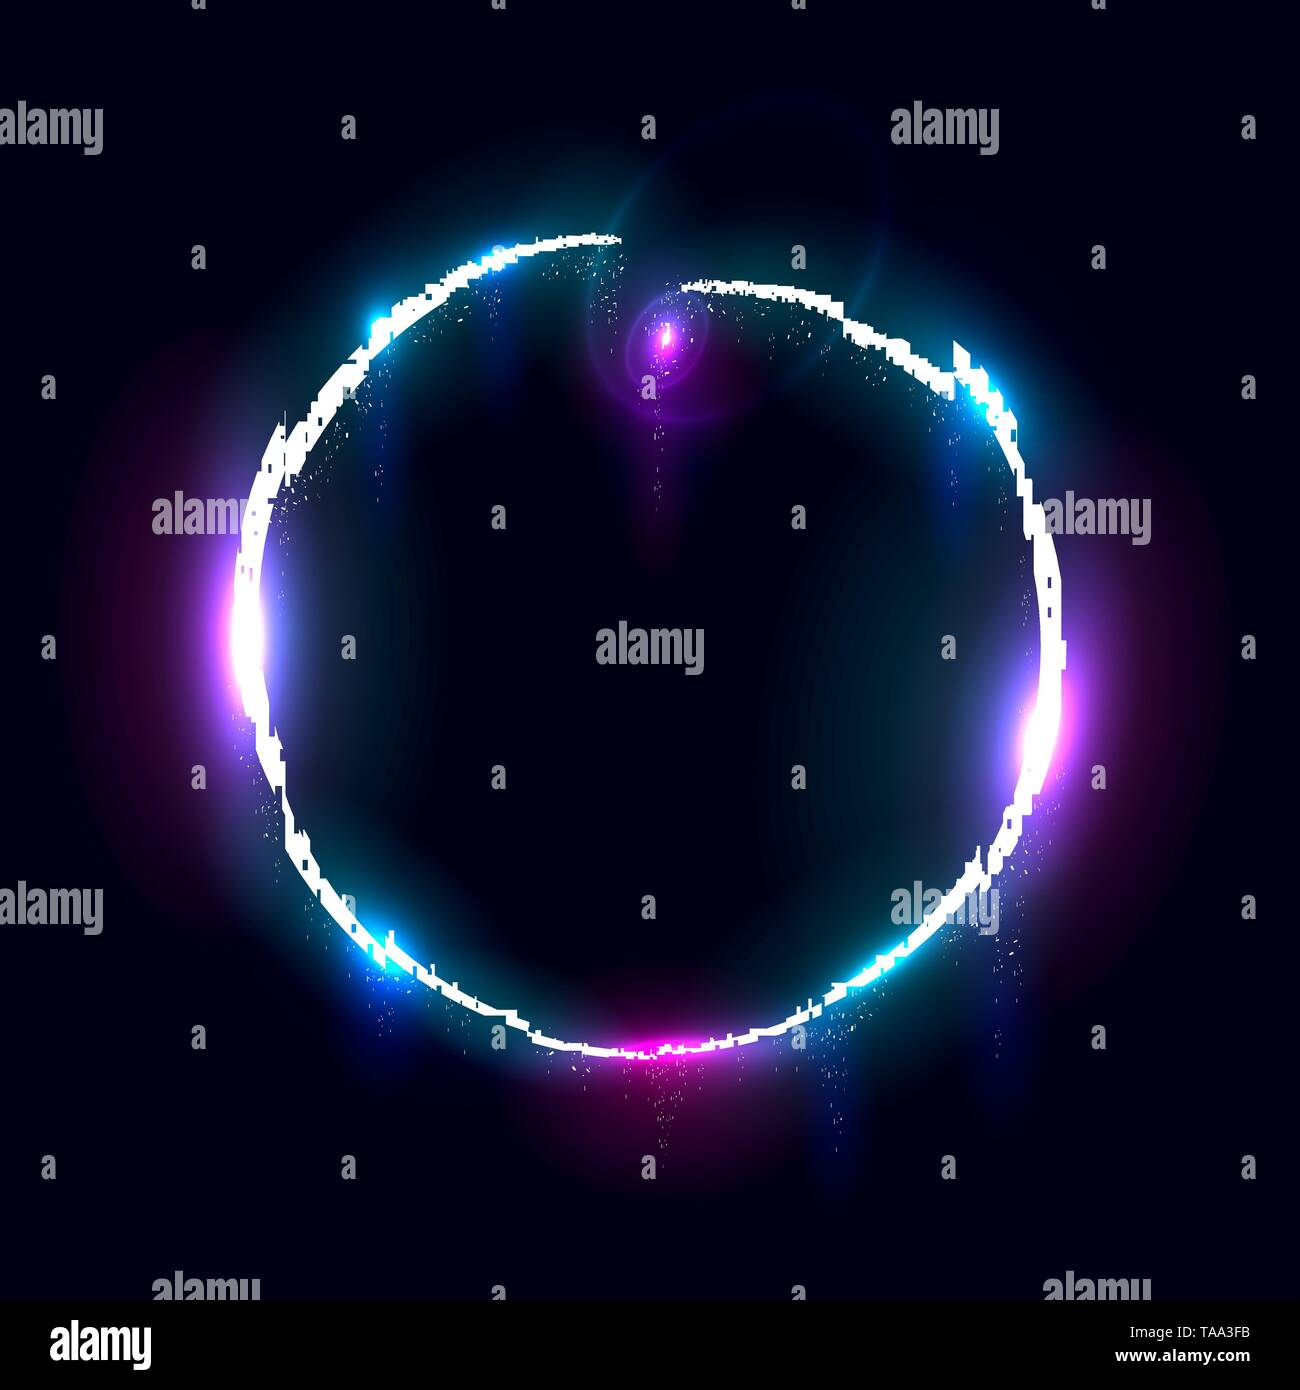 Illuminated collapsing circle, Design element for banner, flyer, card, poster. - Stock Image